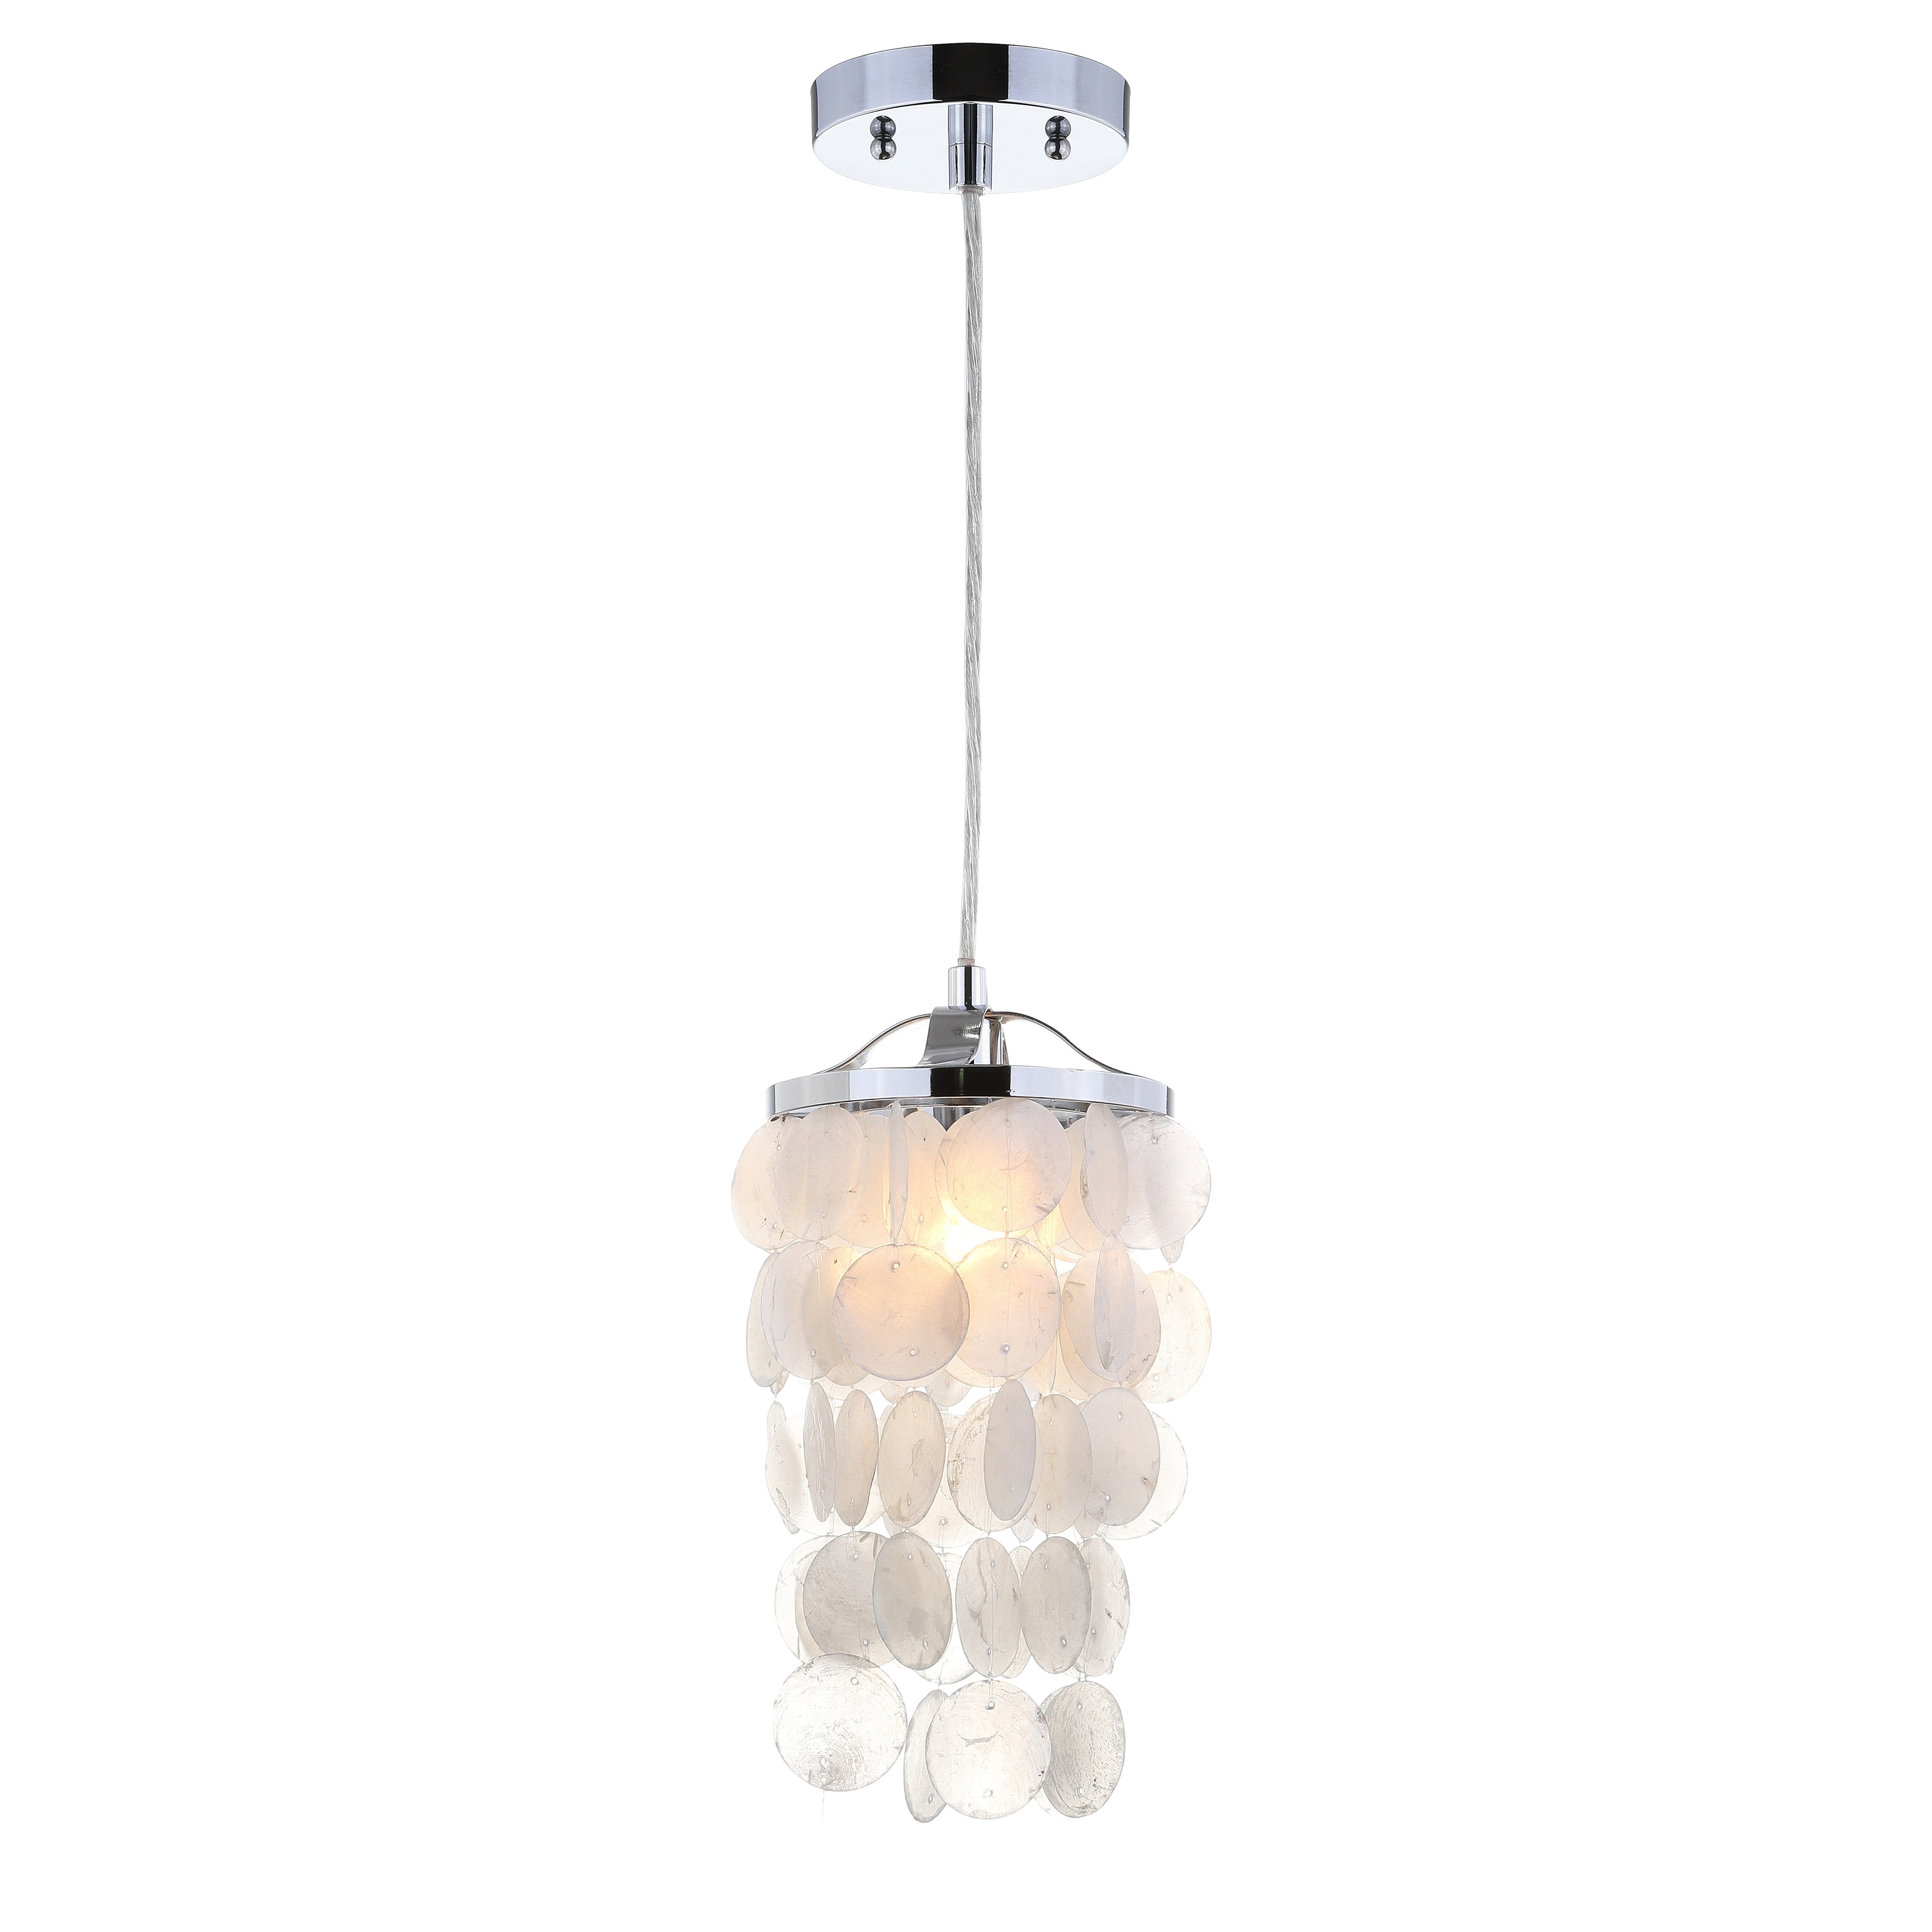 Shop Black Friday Deals On Cayla 7 Seashell Led Chandelier Pendant White Chrome By Jonathan Y Overstock 20711792